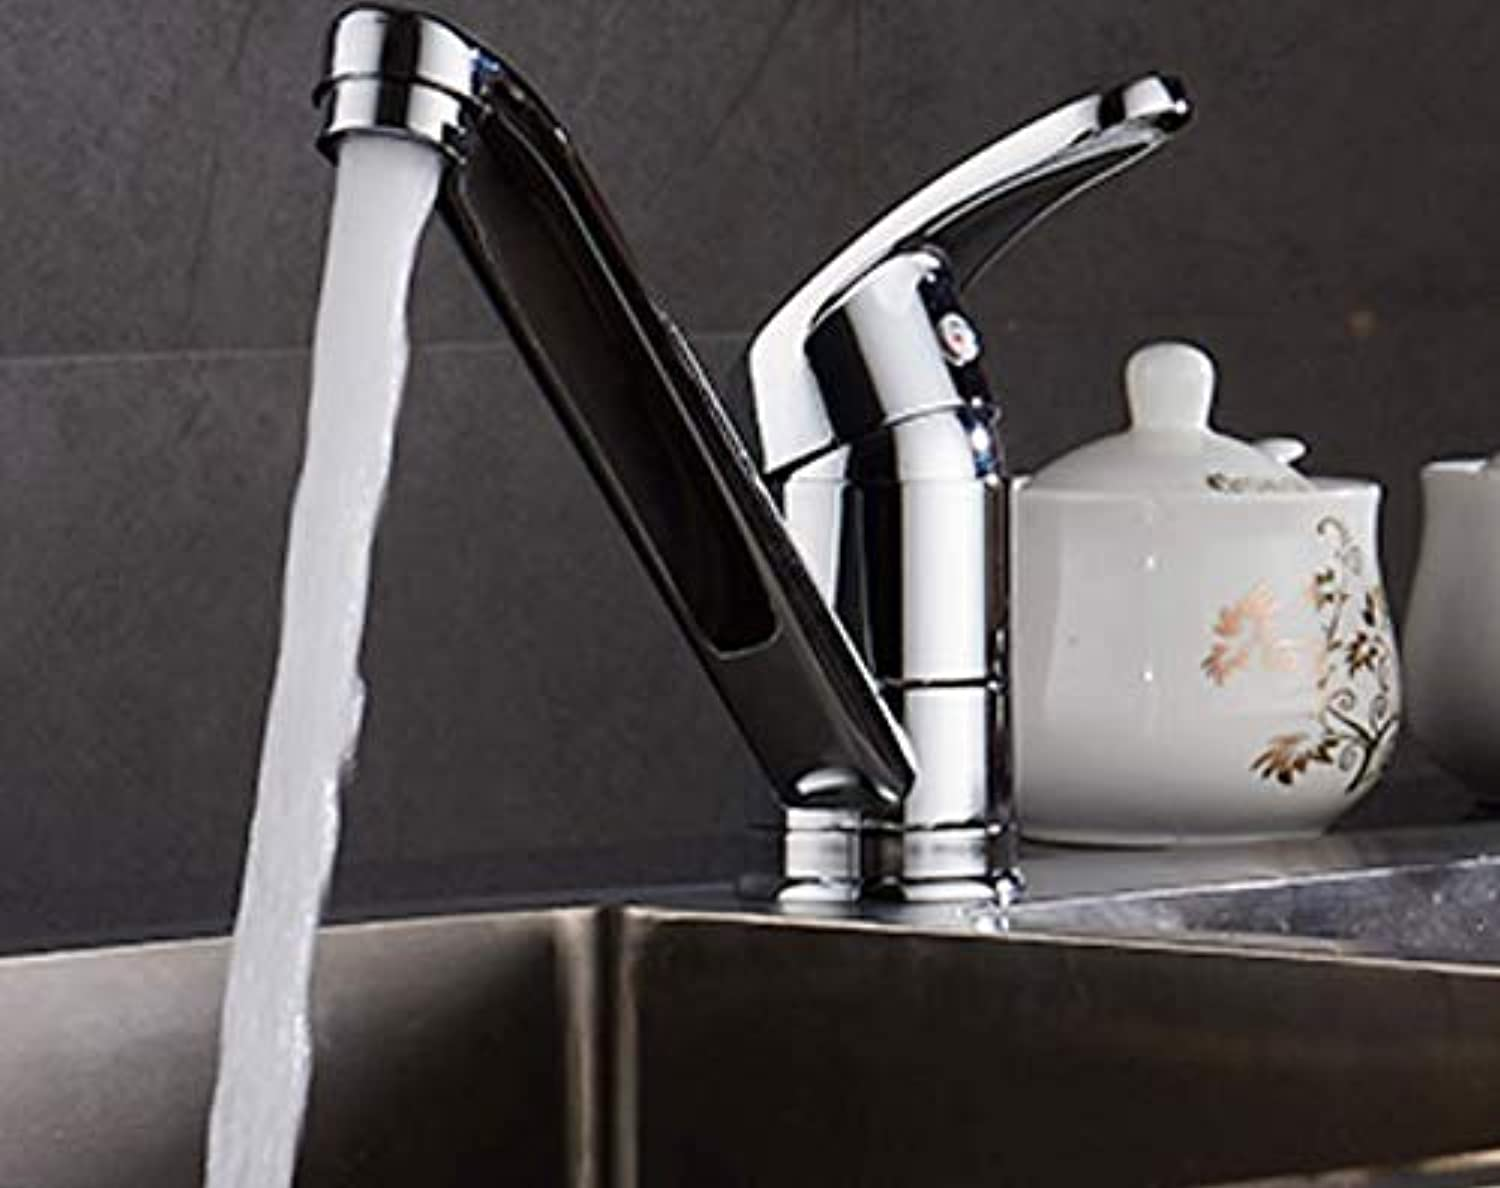 Bathroom Faucet Boss Long Neck Faucet Short Long Mouth greenical Long redatable Sink Sink Kitchen Faucet Hot and Cold